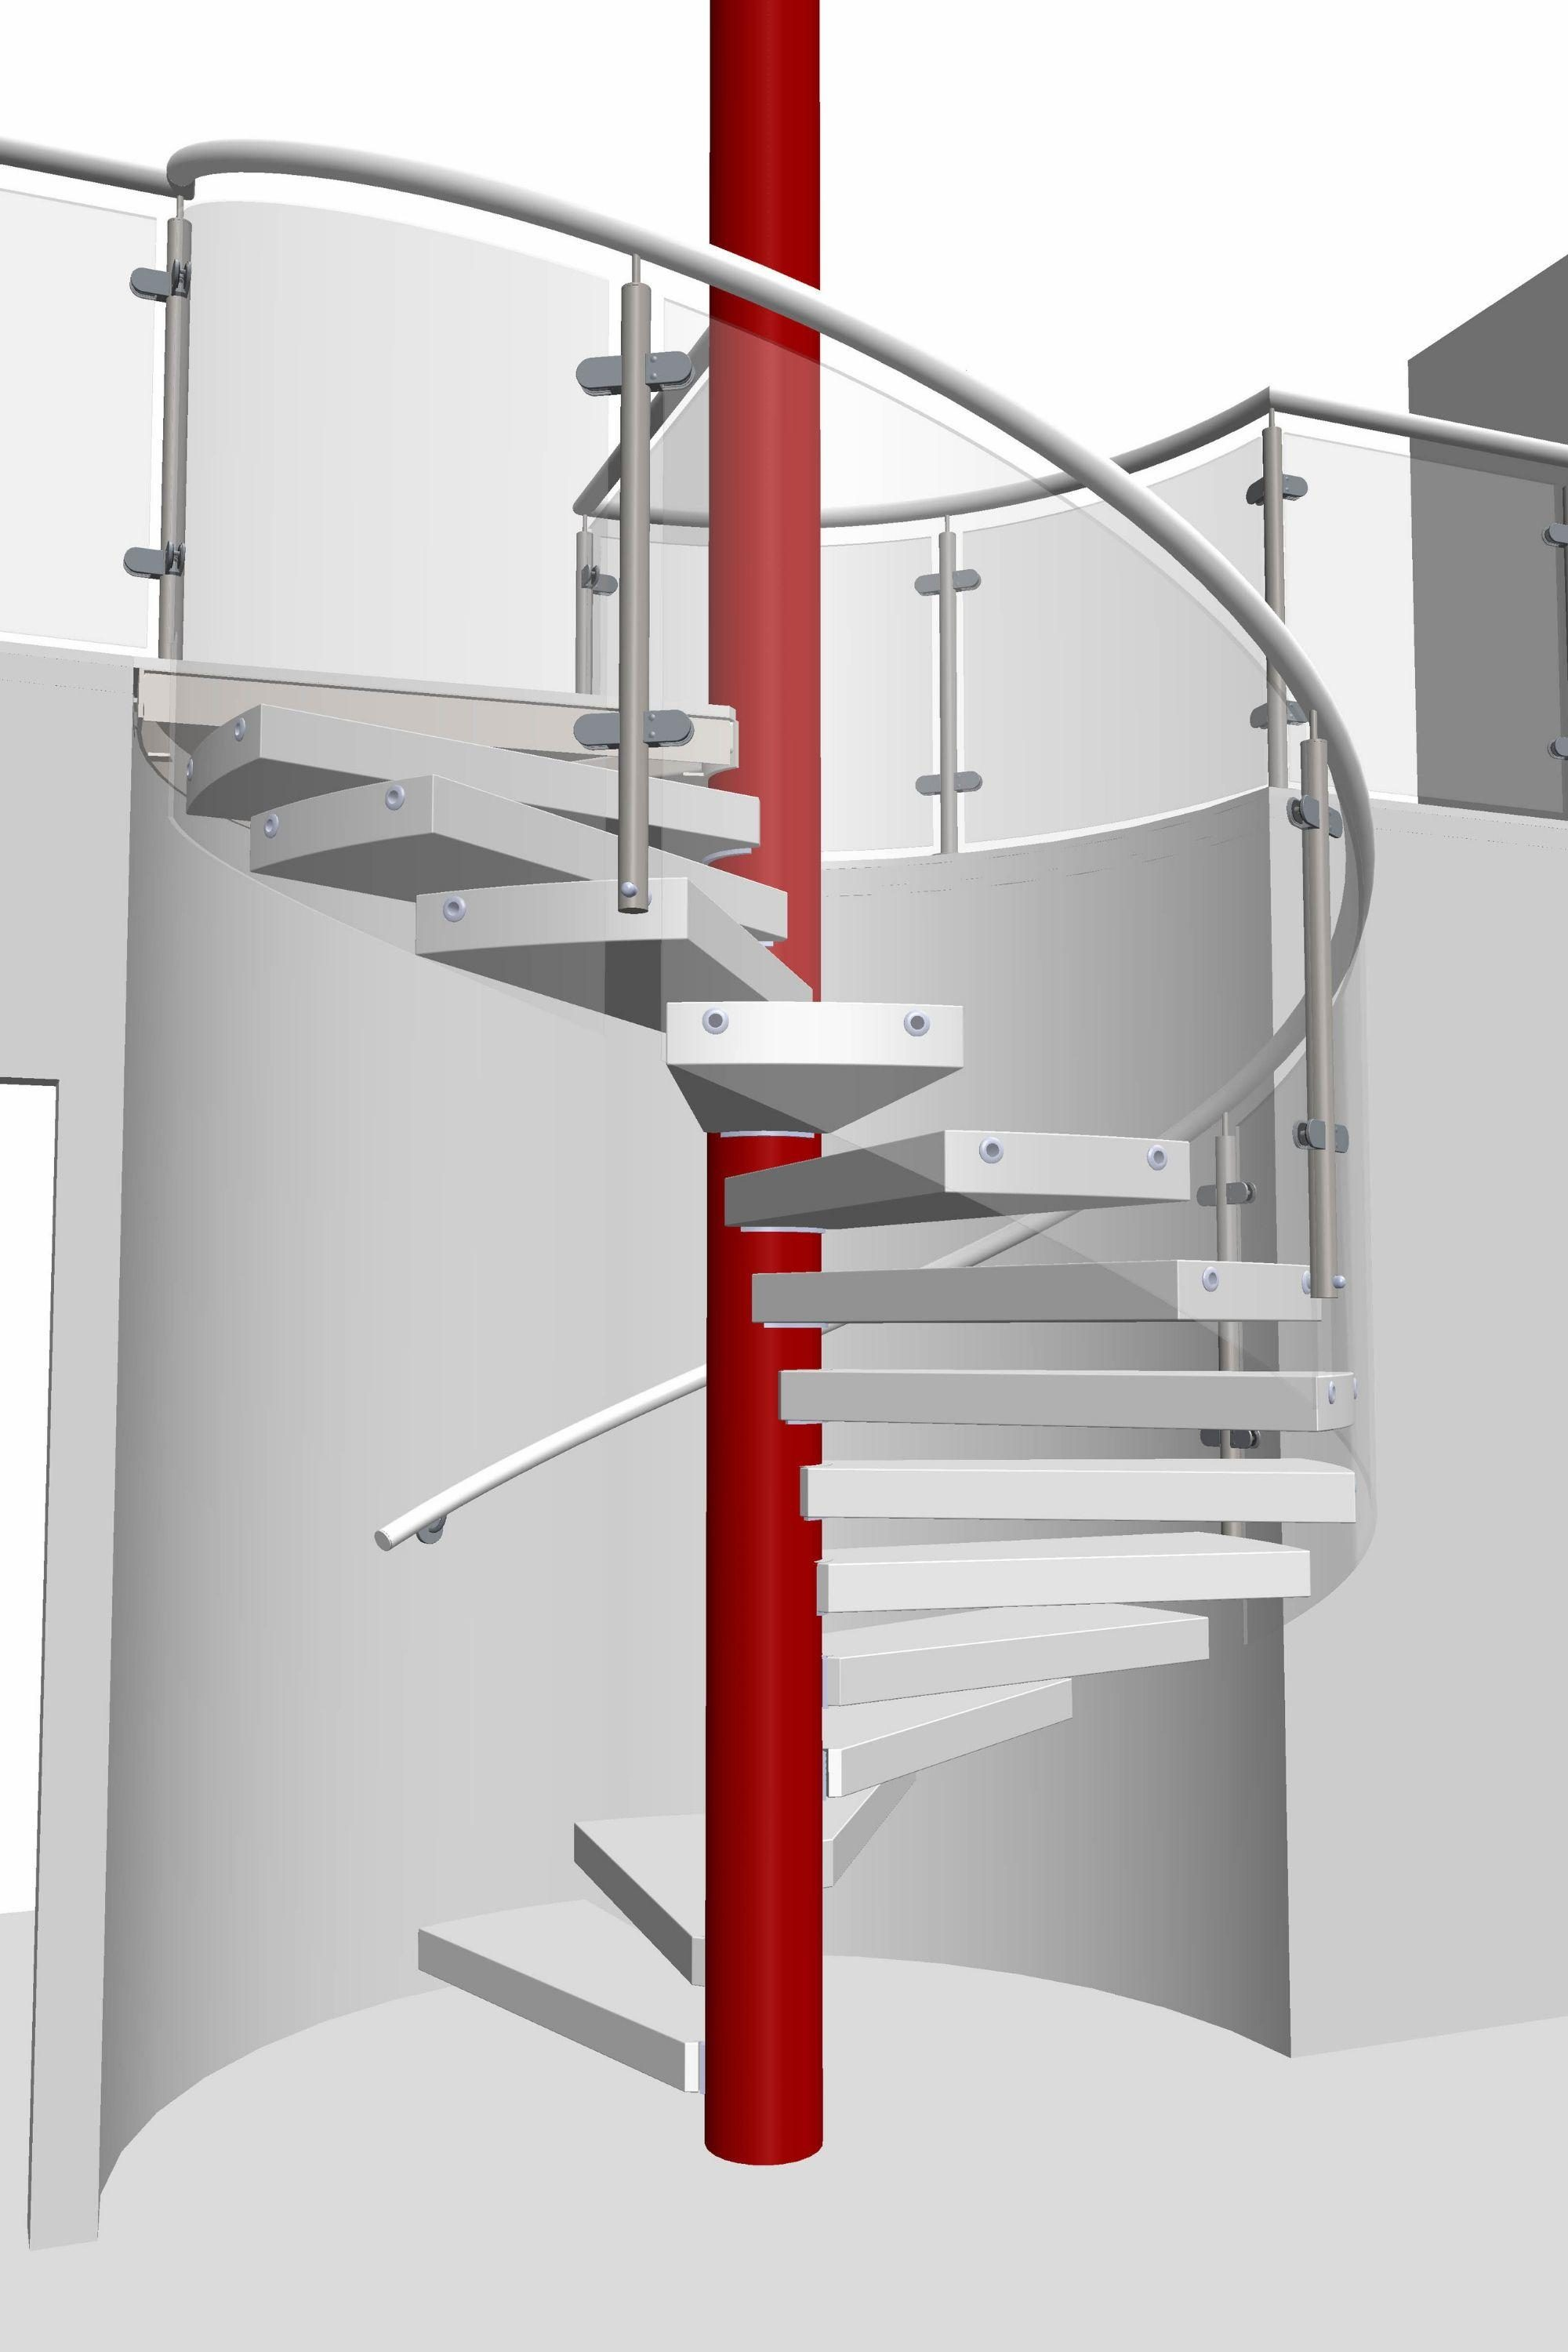 Render of spiral staircase